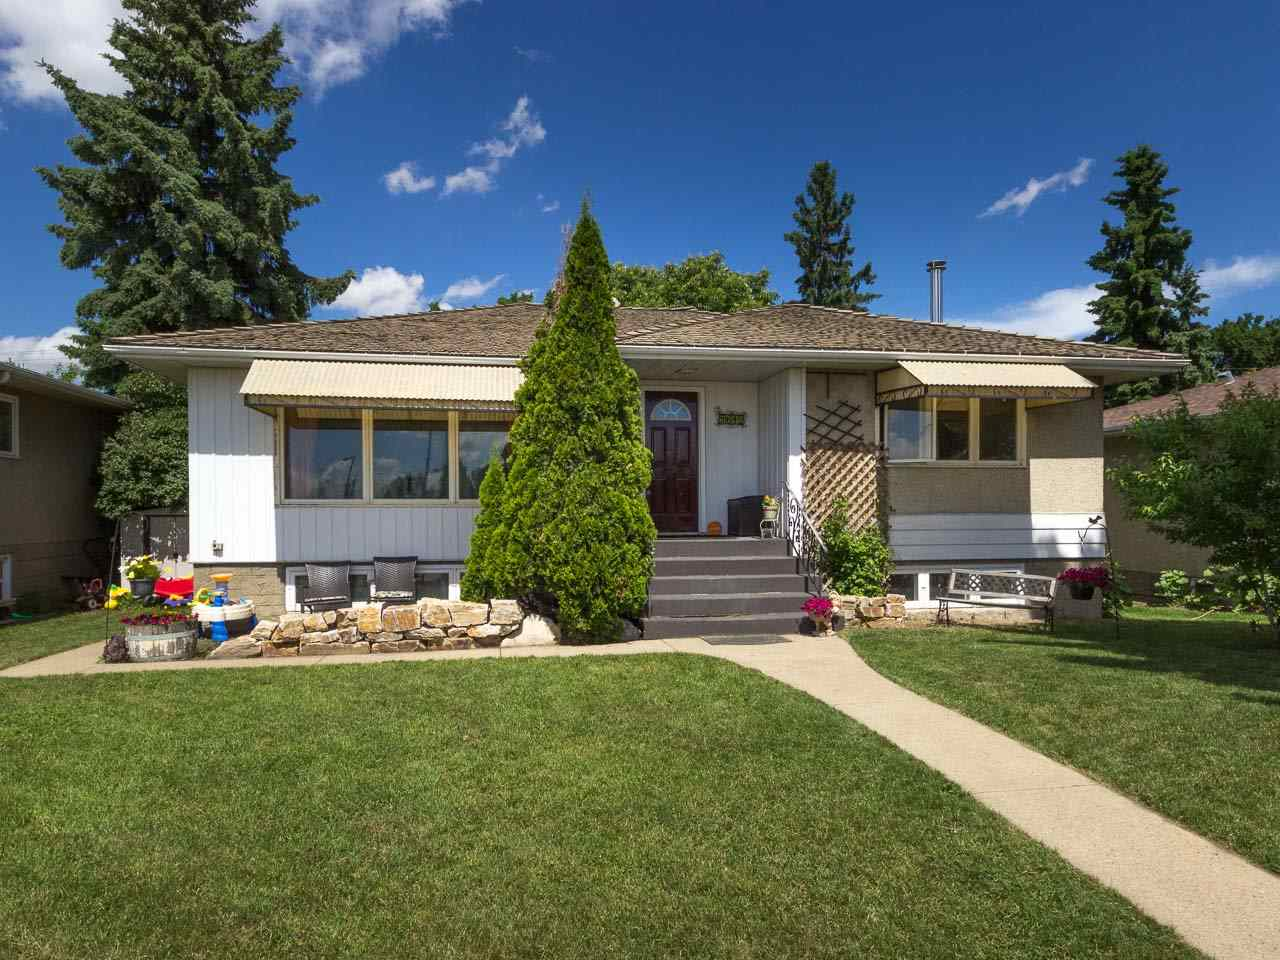 Main Photo: 5612 101 Avenue in Edmonton: Zone 19 House for sale : MLS® # E4070309